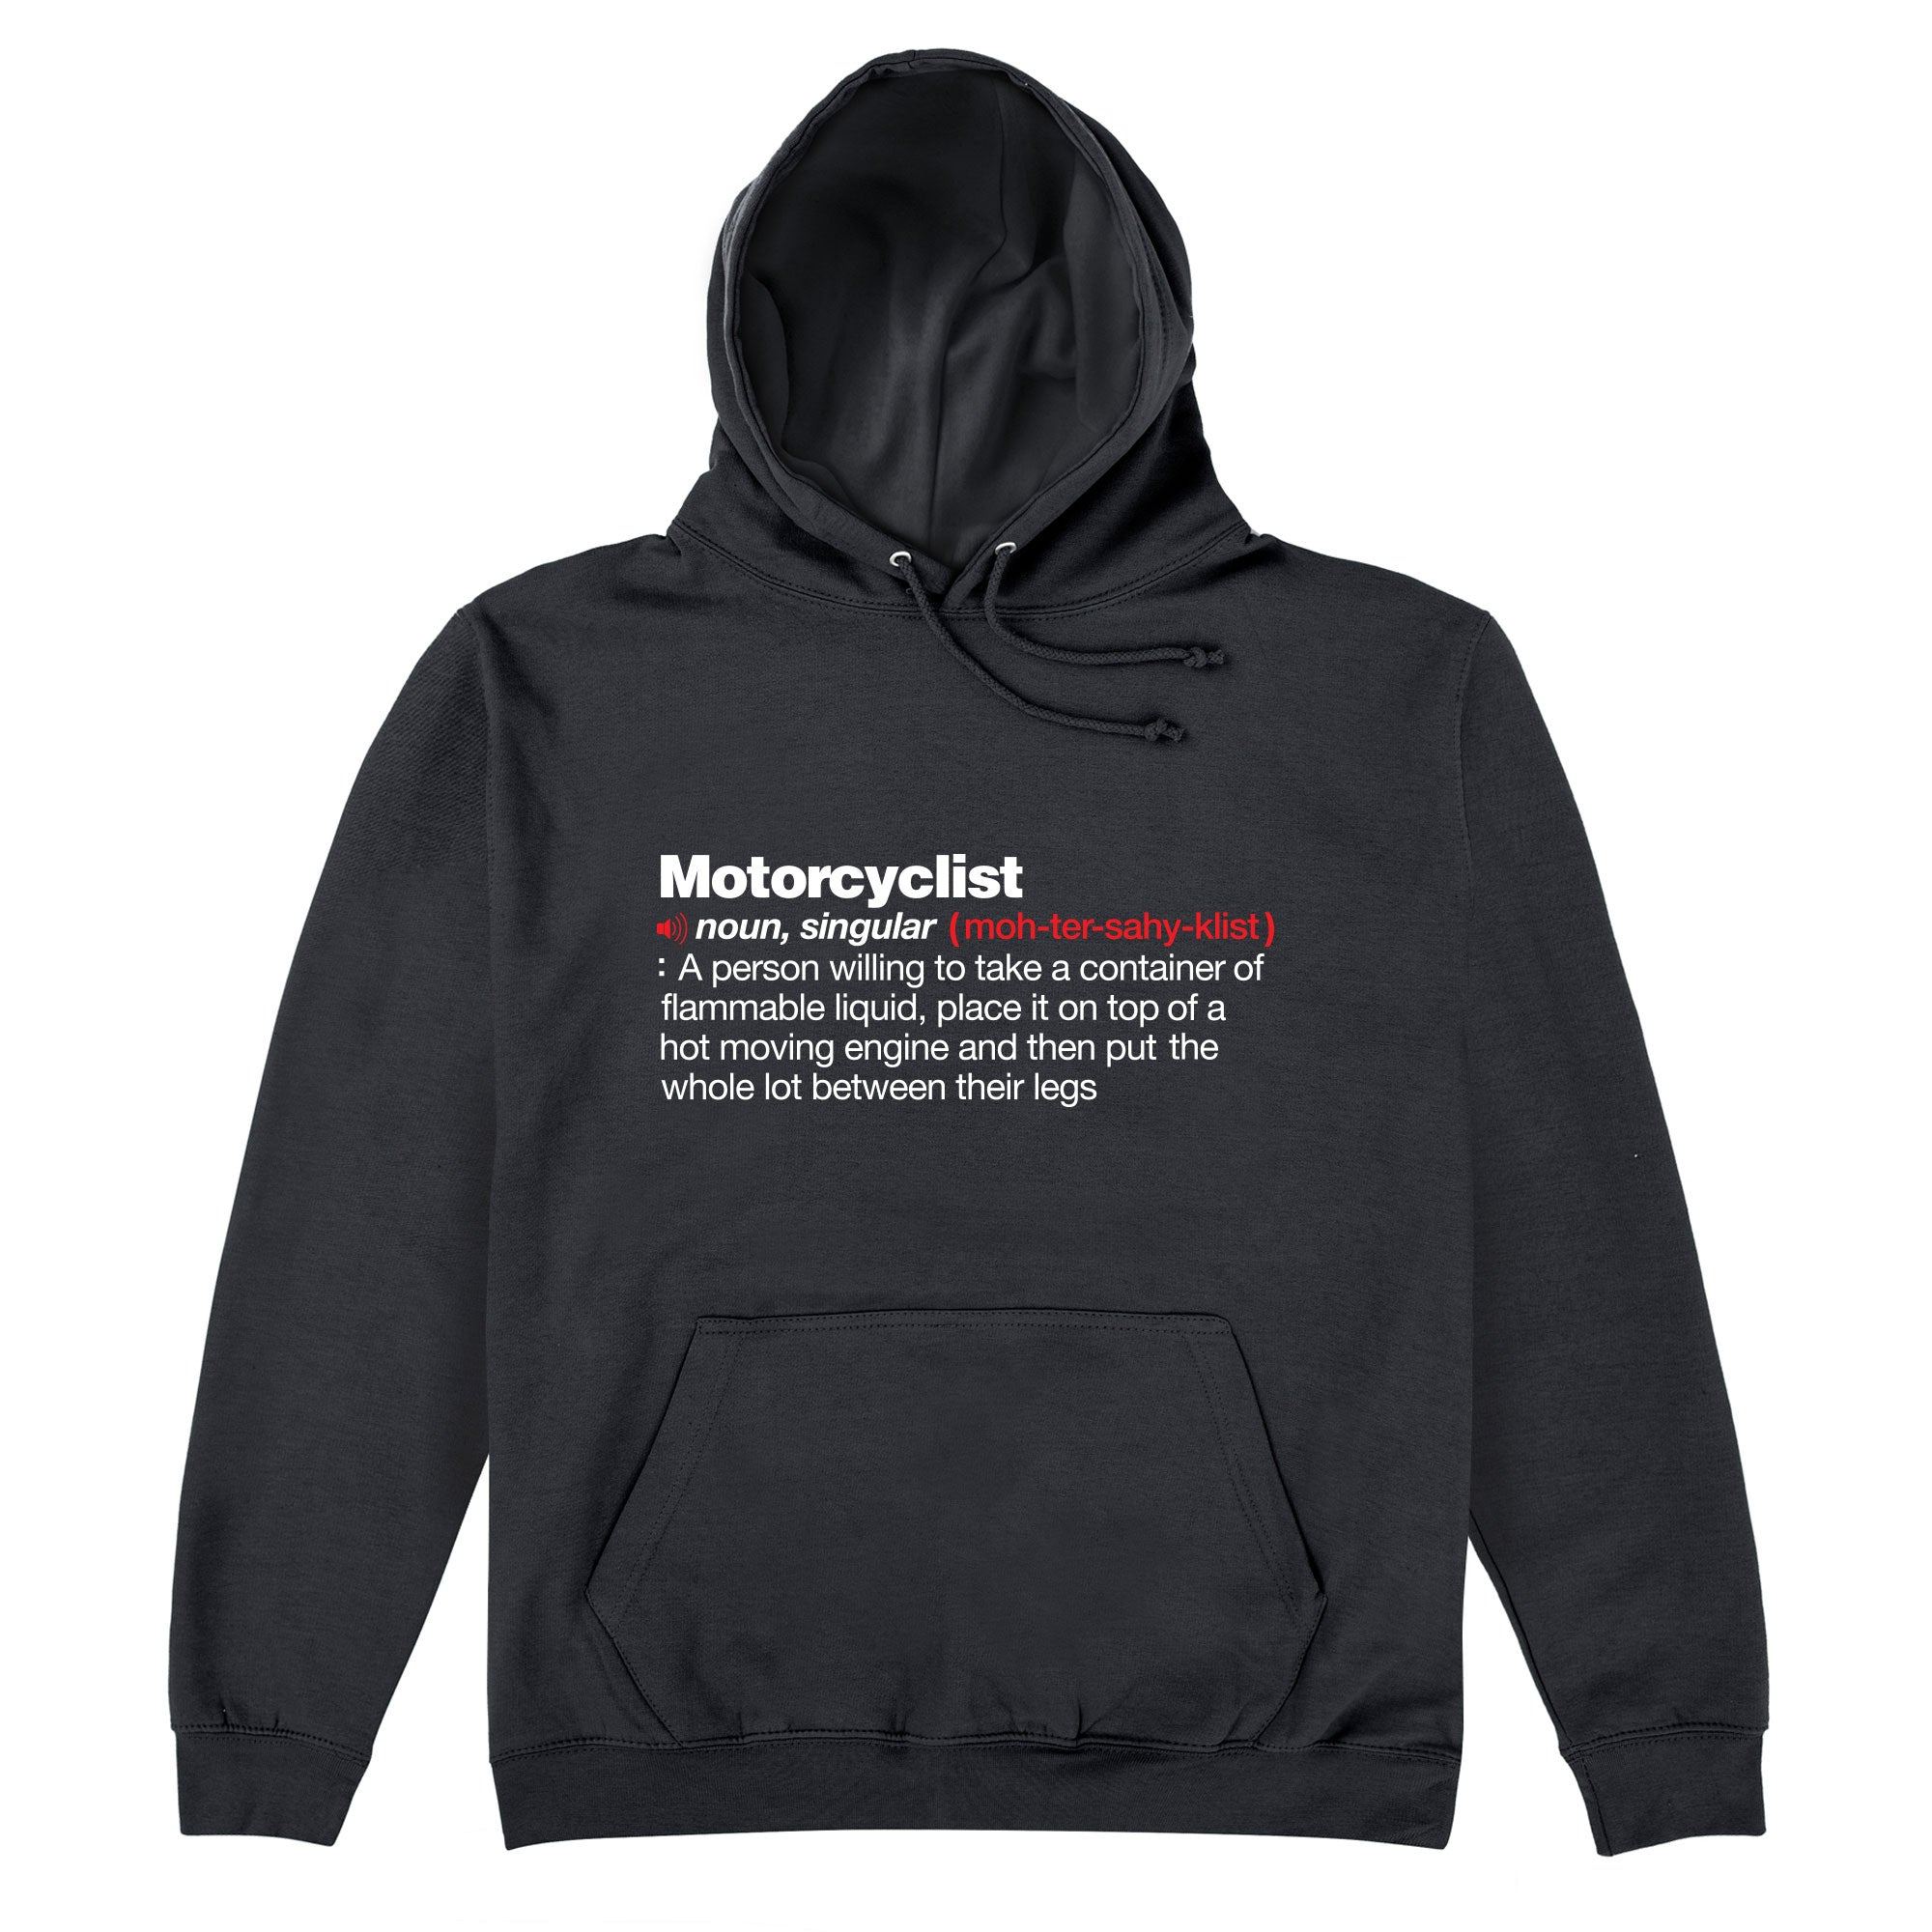 CHEAP Motorcyclist Definition Hoodie 25735409489 – Clothing Accessories